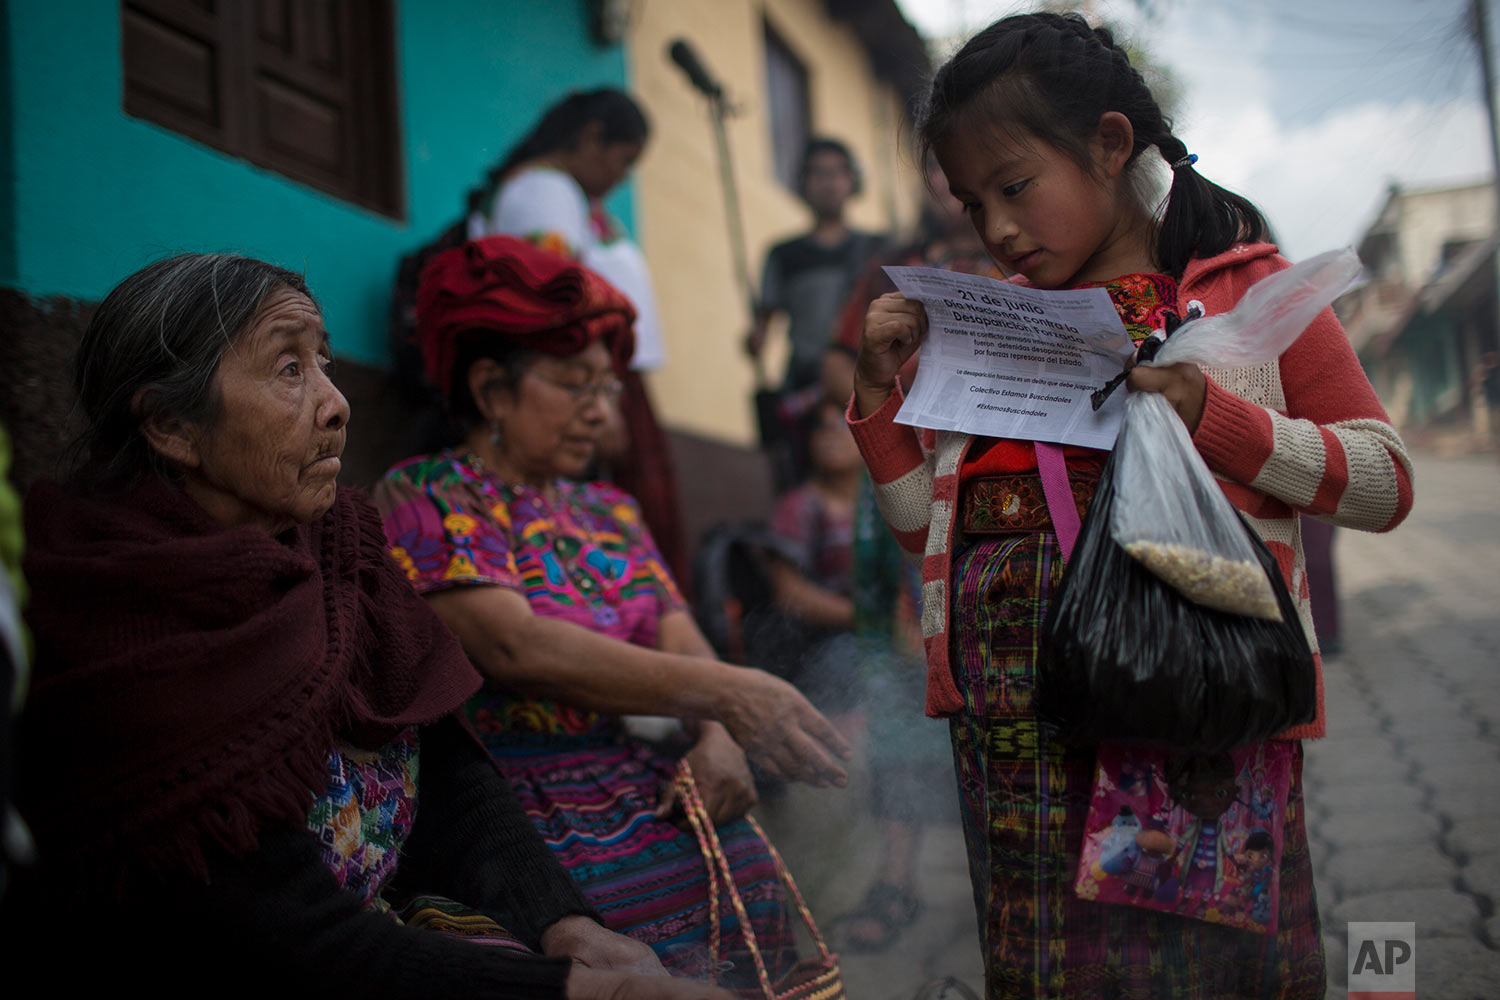 In this June 20, 2018 photo, a girl reads a paper announcing the National Day of Forced Disappearance during a funeral ceremony for 172 unidentified people who were dug up from a former military camp, one day before properly burying them in the same area they were discovered, in San Juan Comalapa, Guatemala. (AP Photo/Rodrigo Abd)